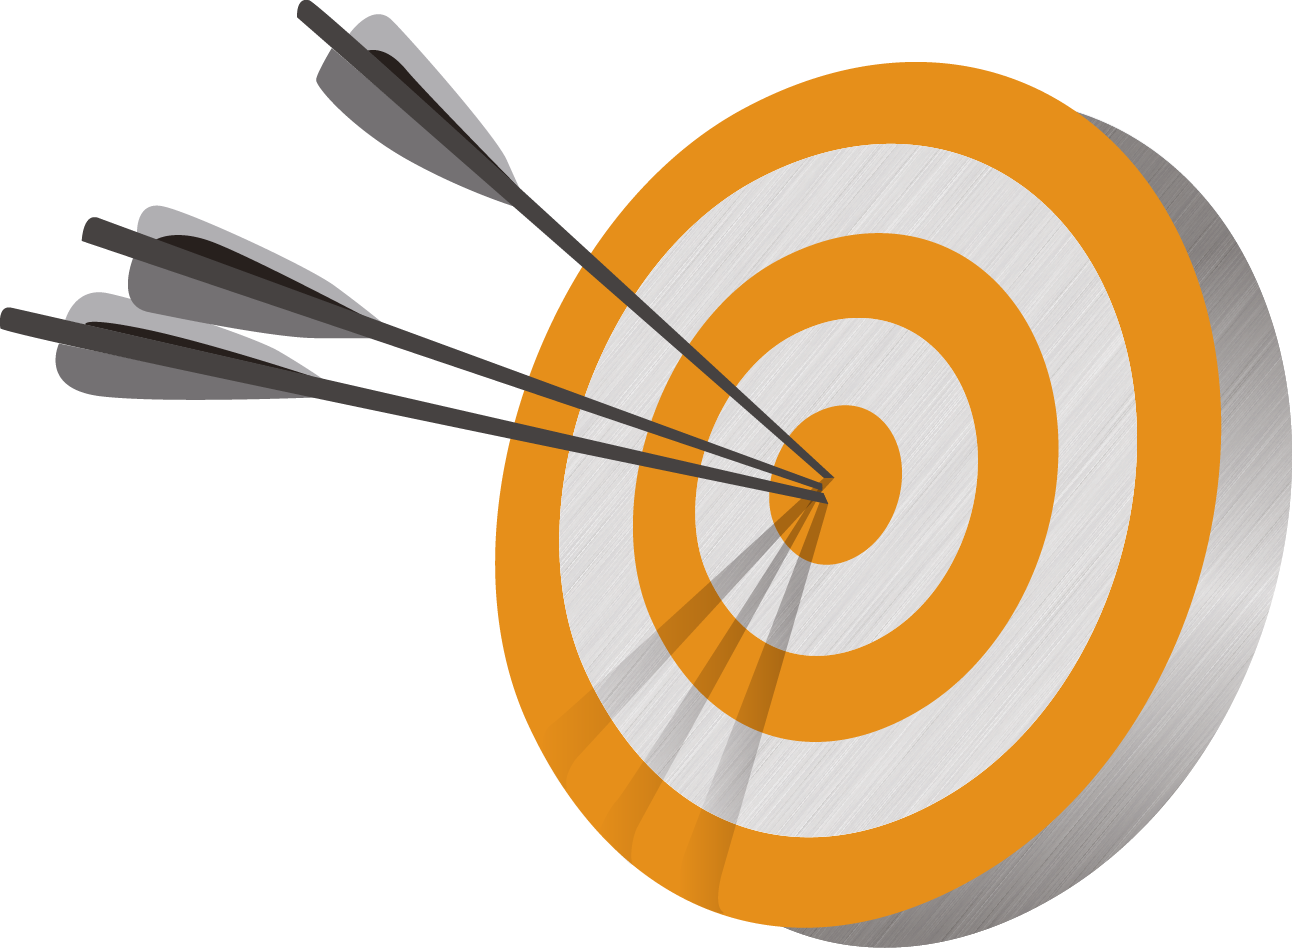 Seo Target Icon Png